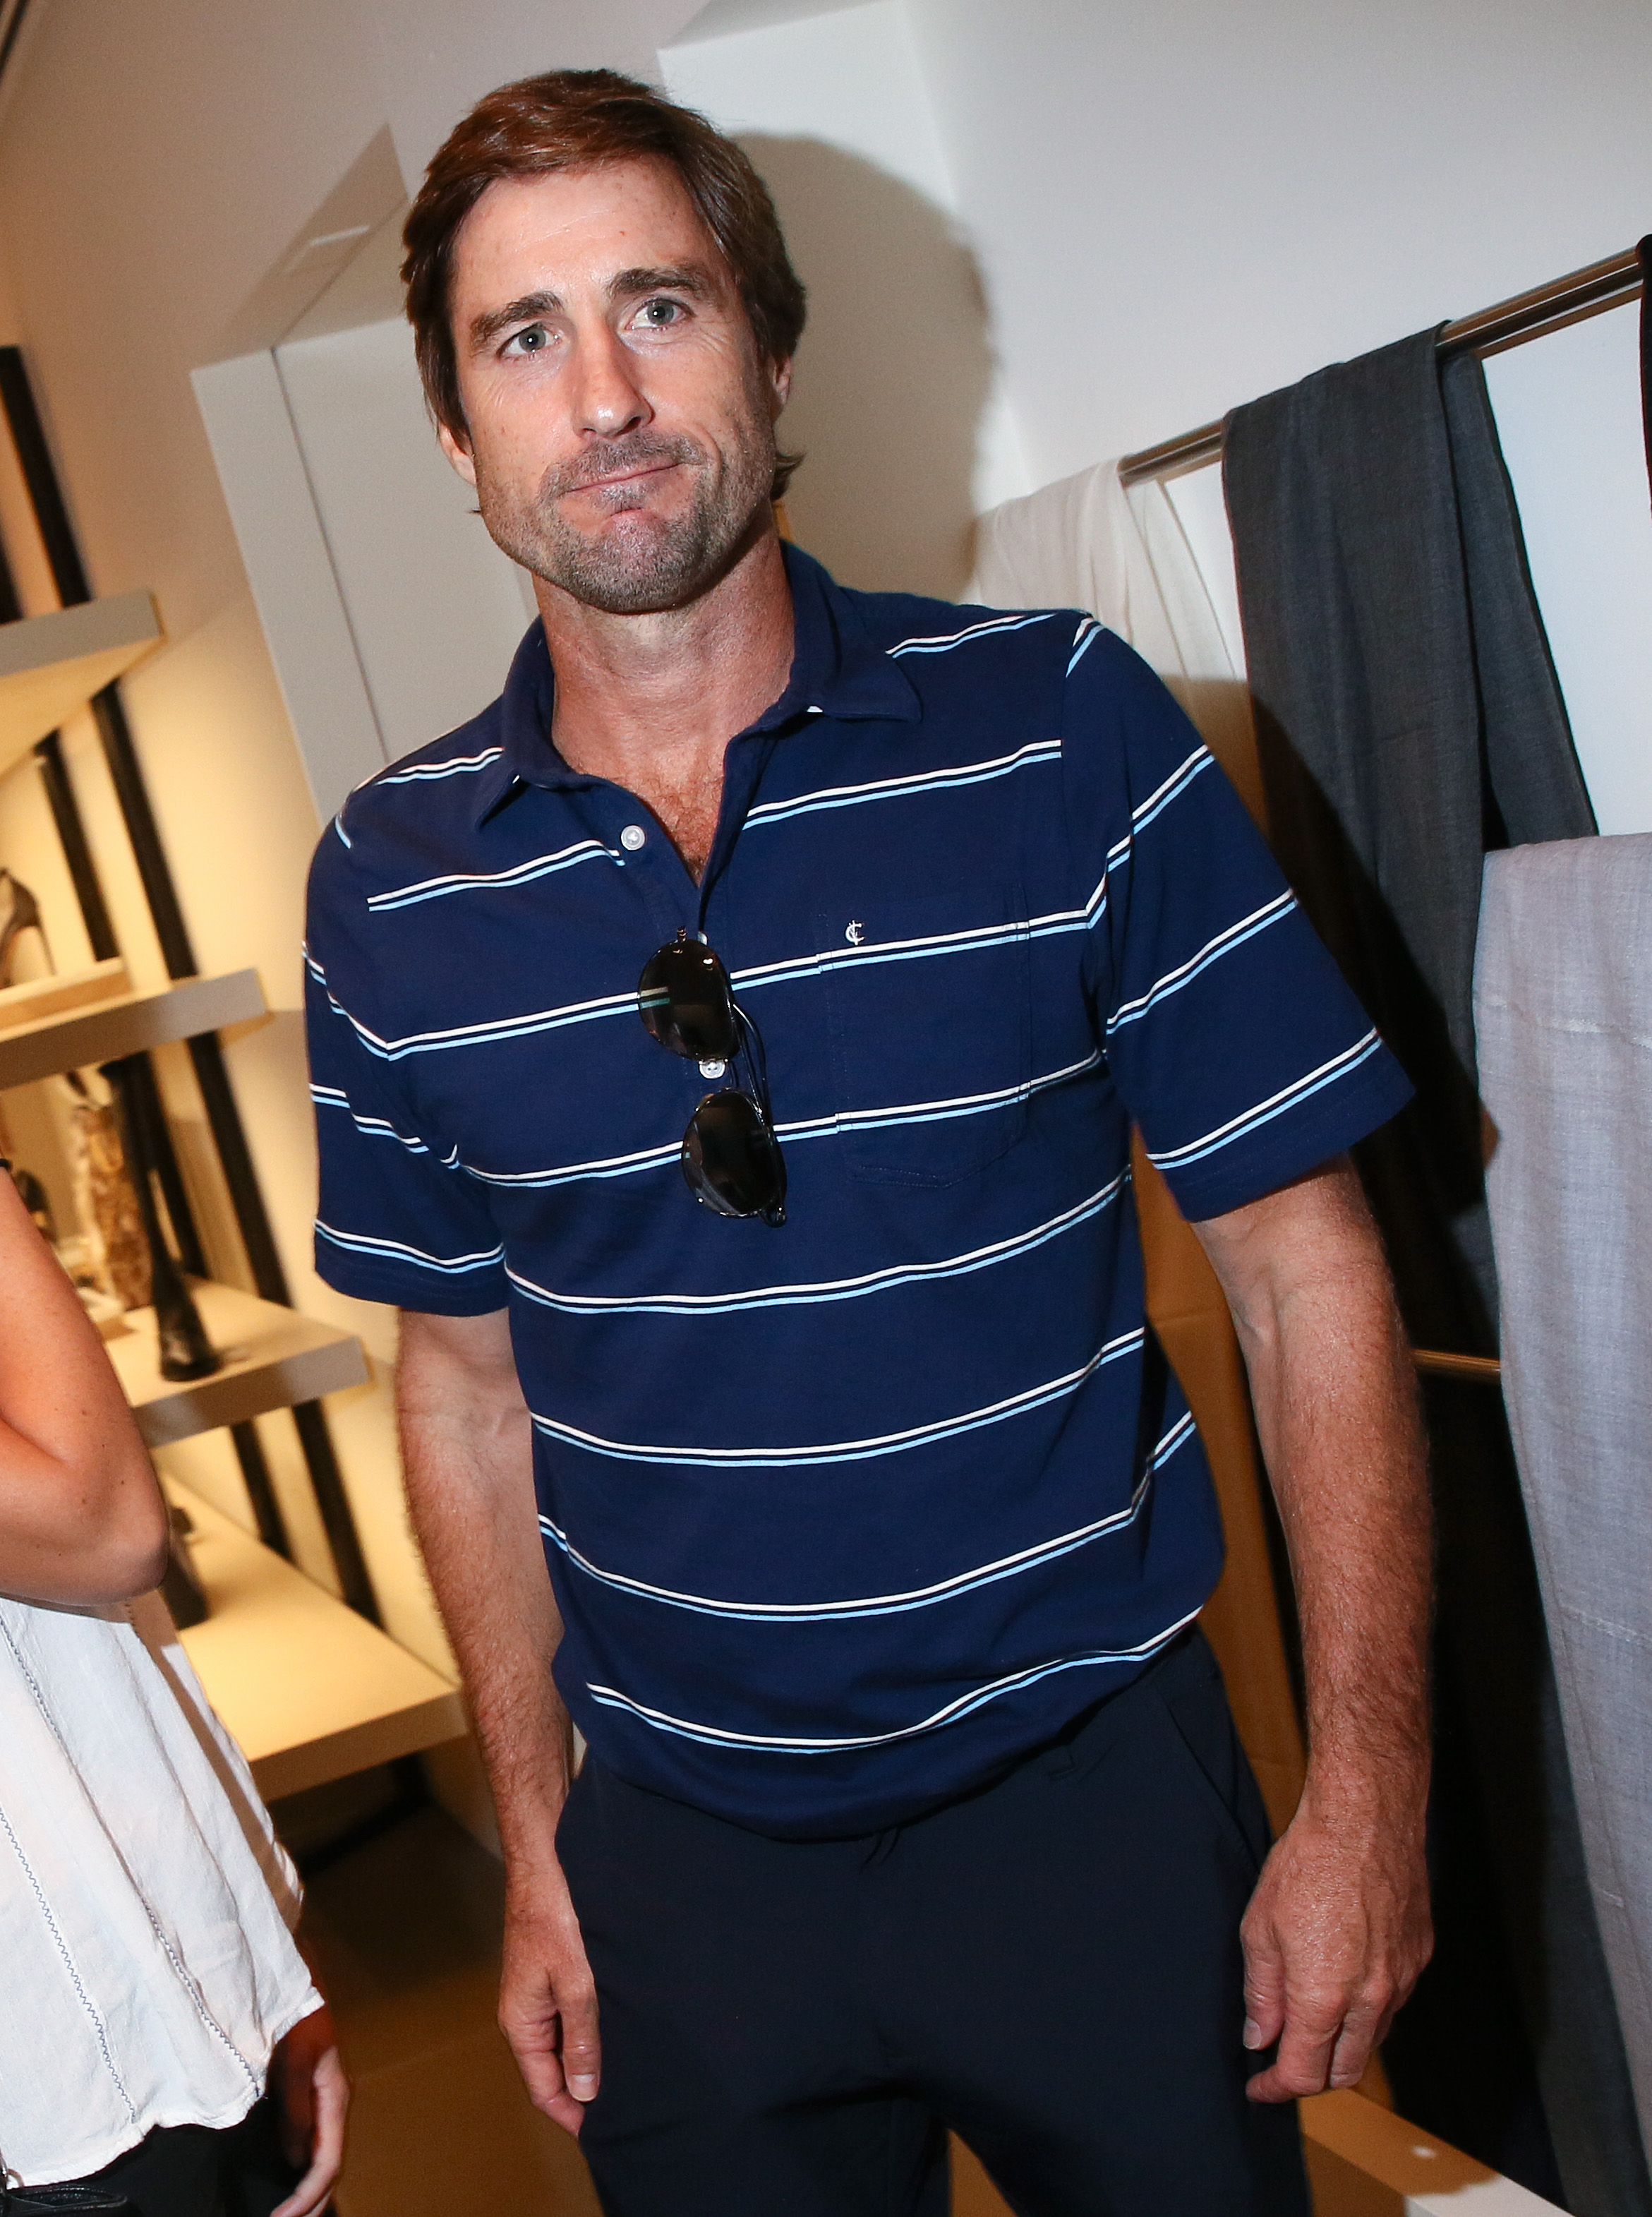 Luke Wilson in Criquet